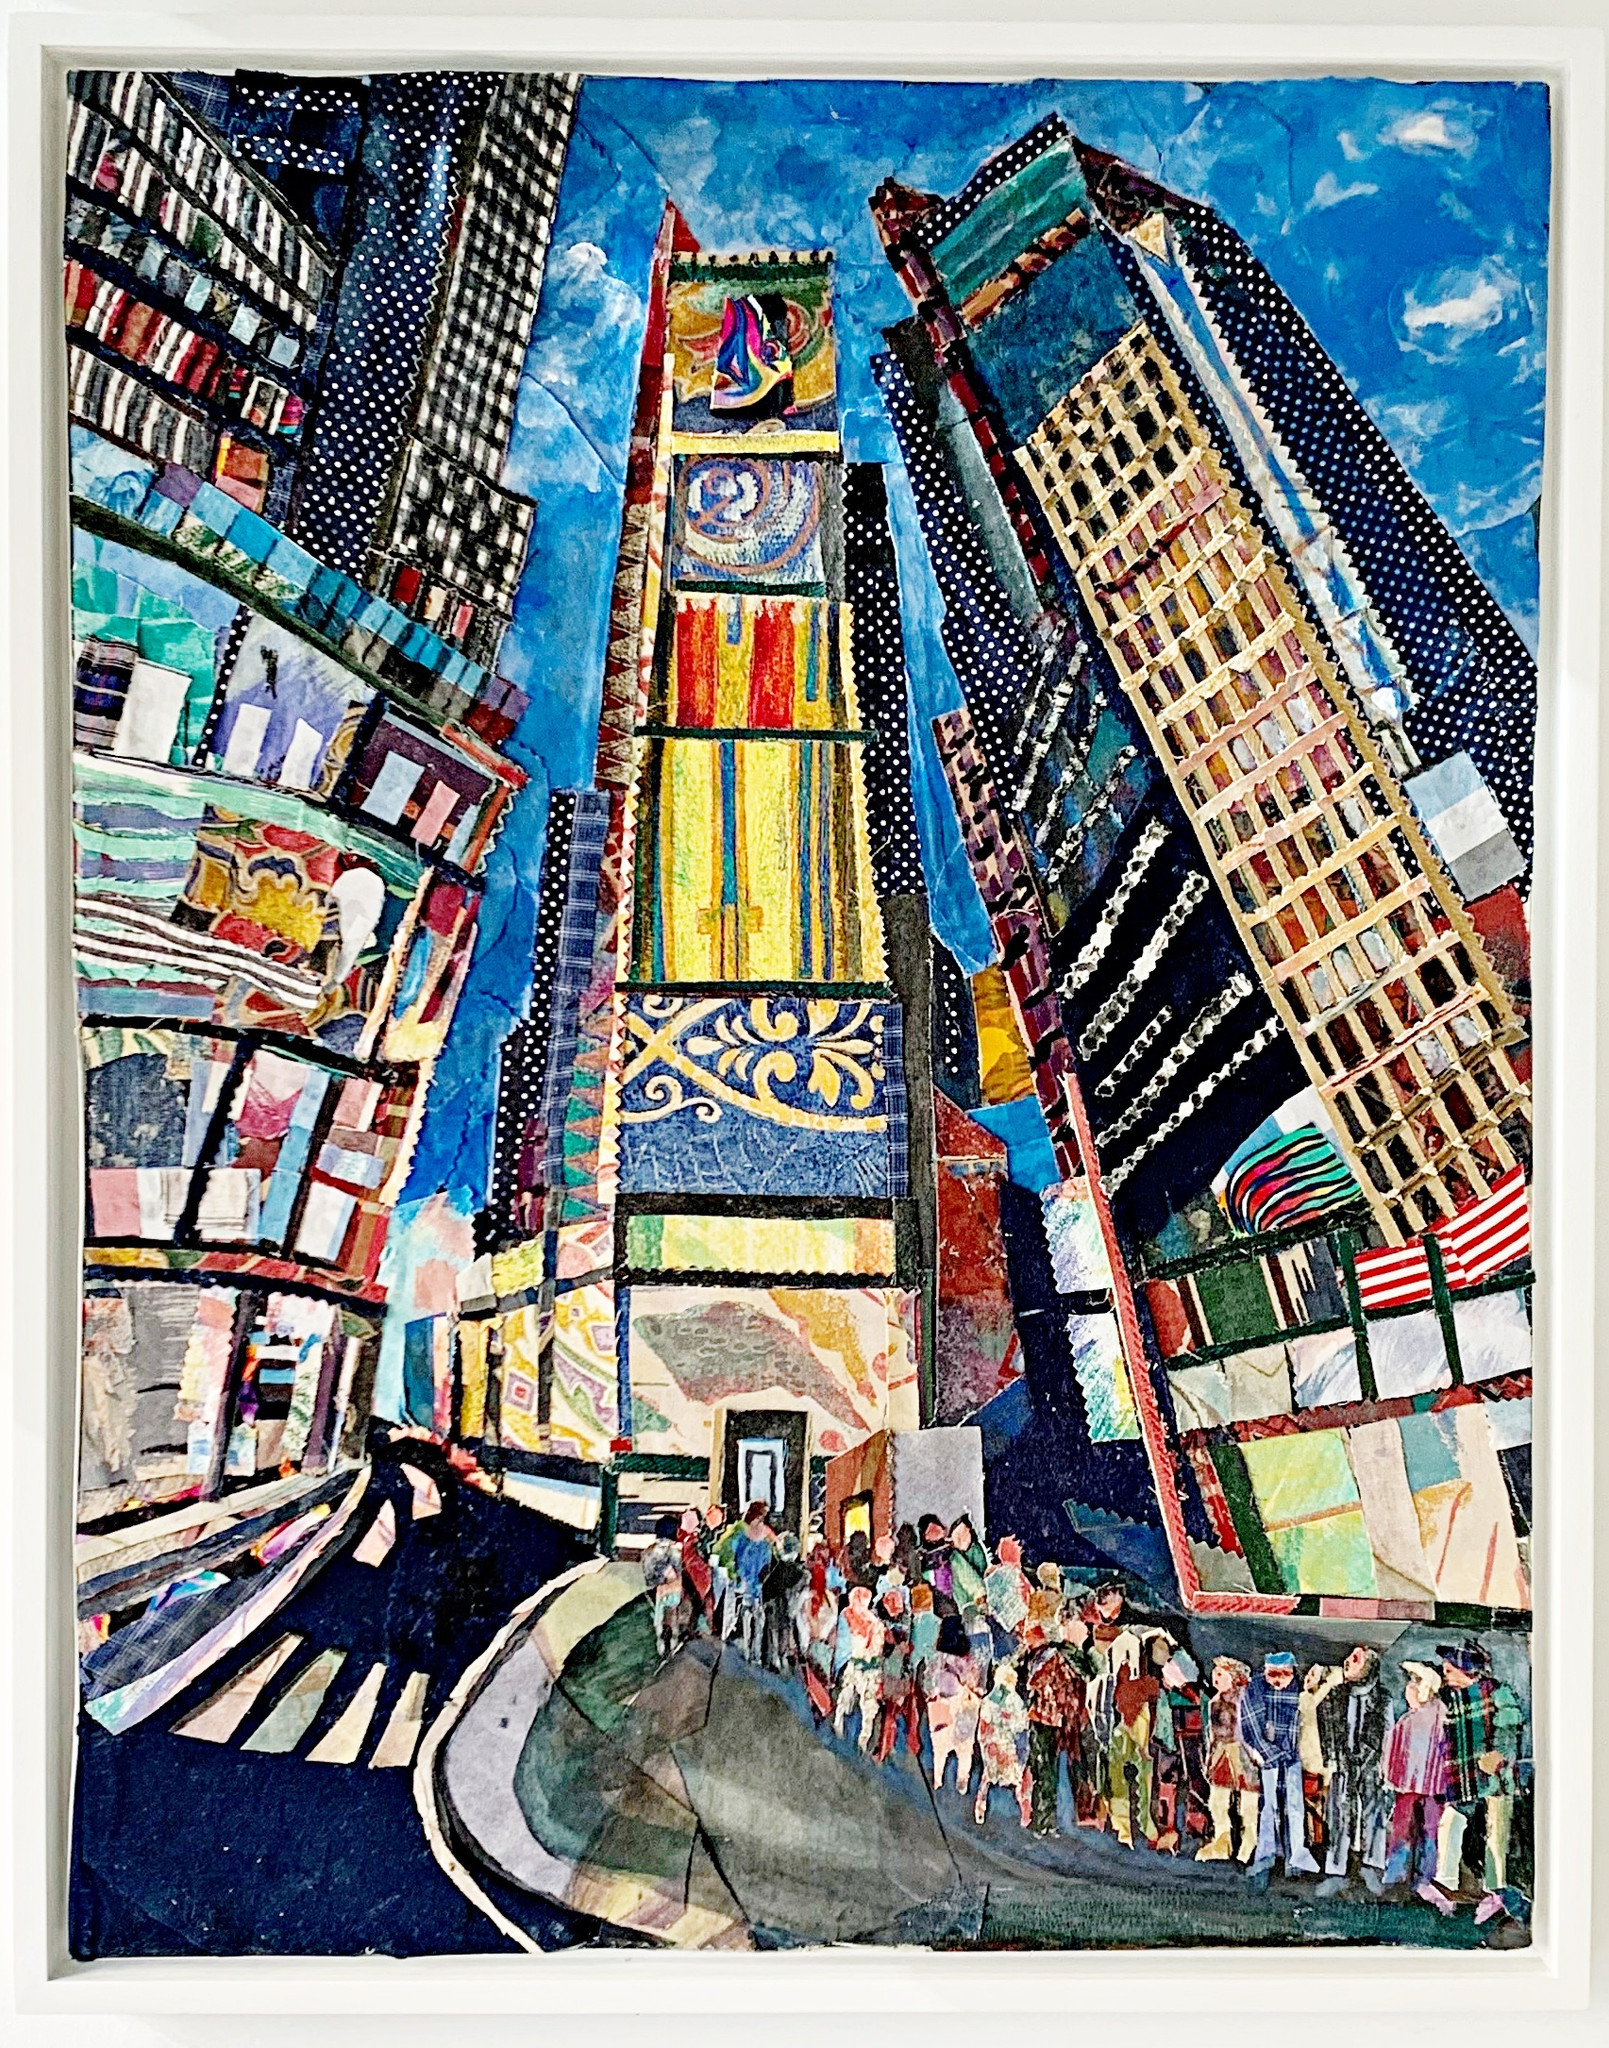 Thelma Appel: Times Square As You've Never Seen It